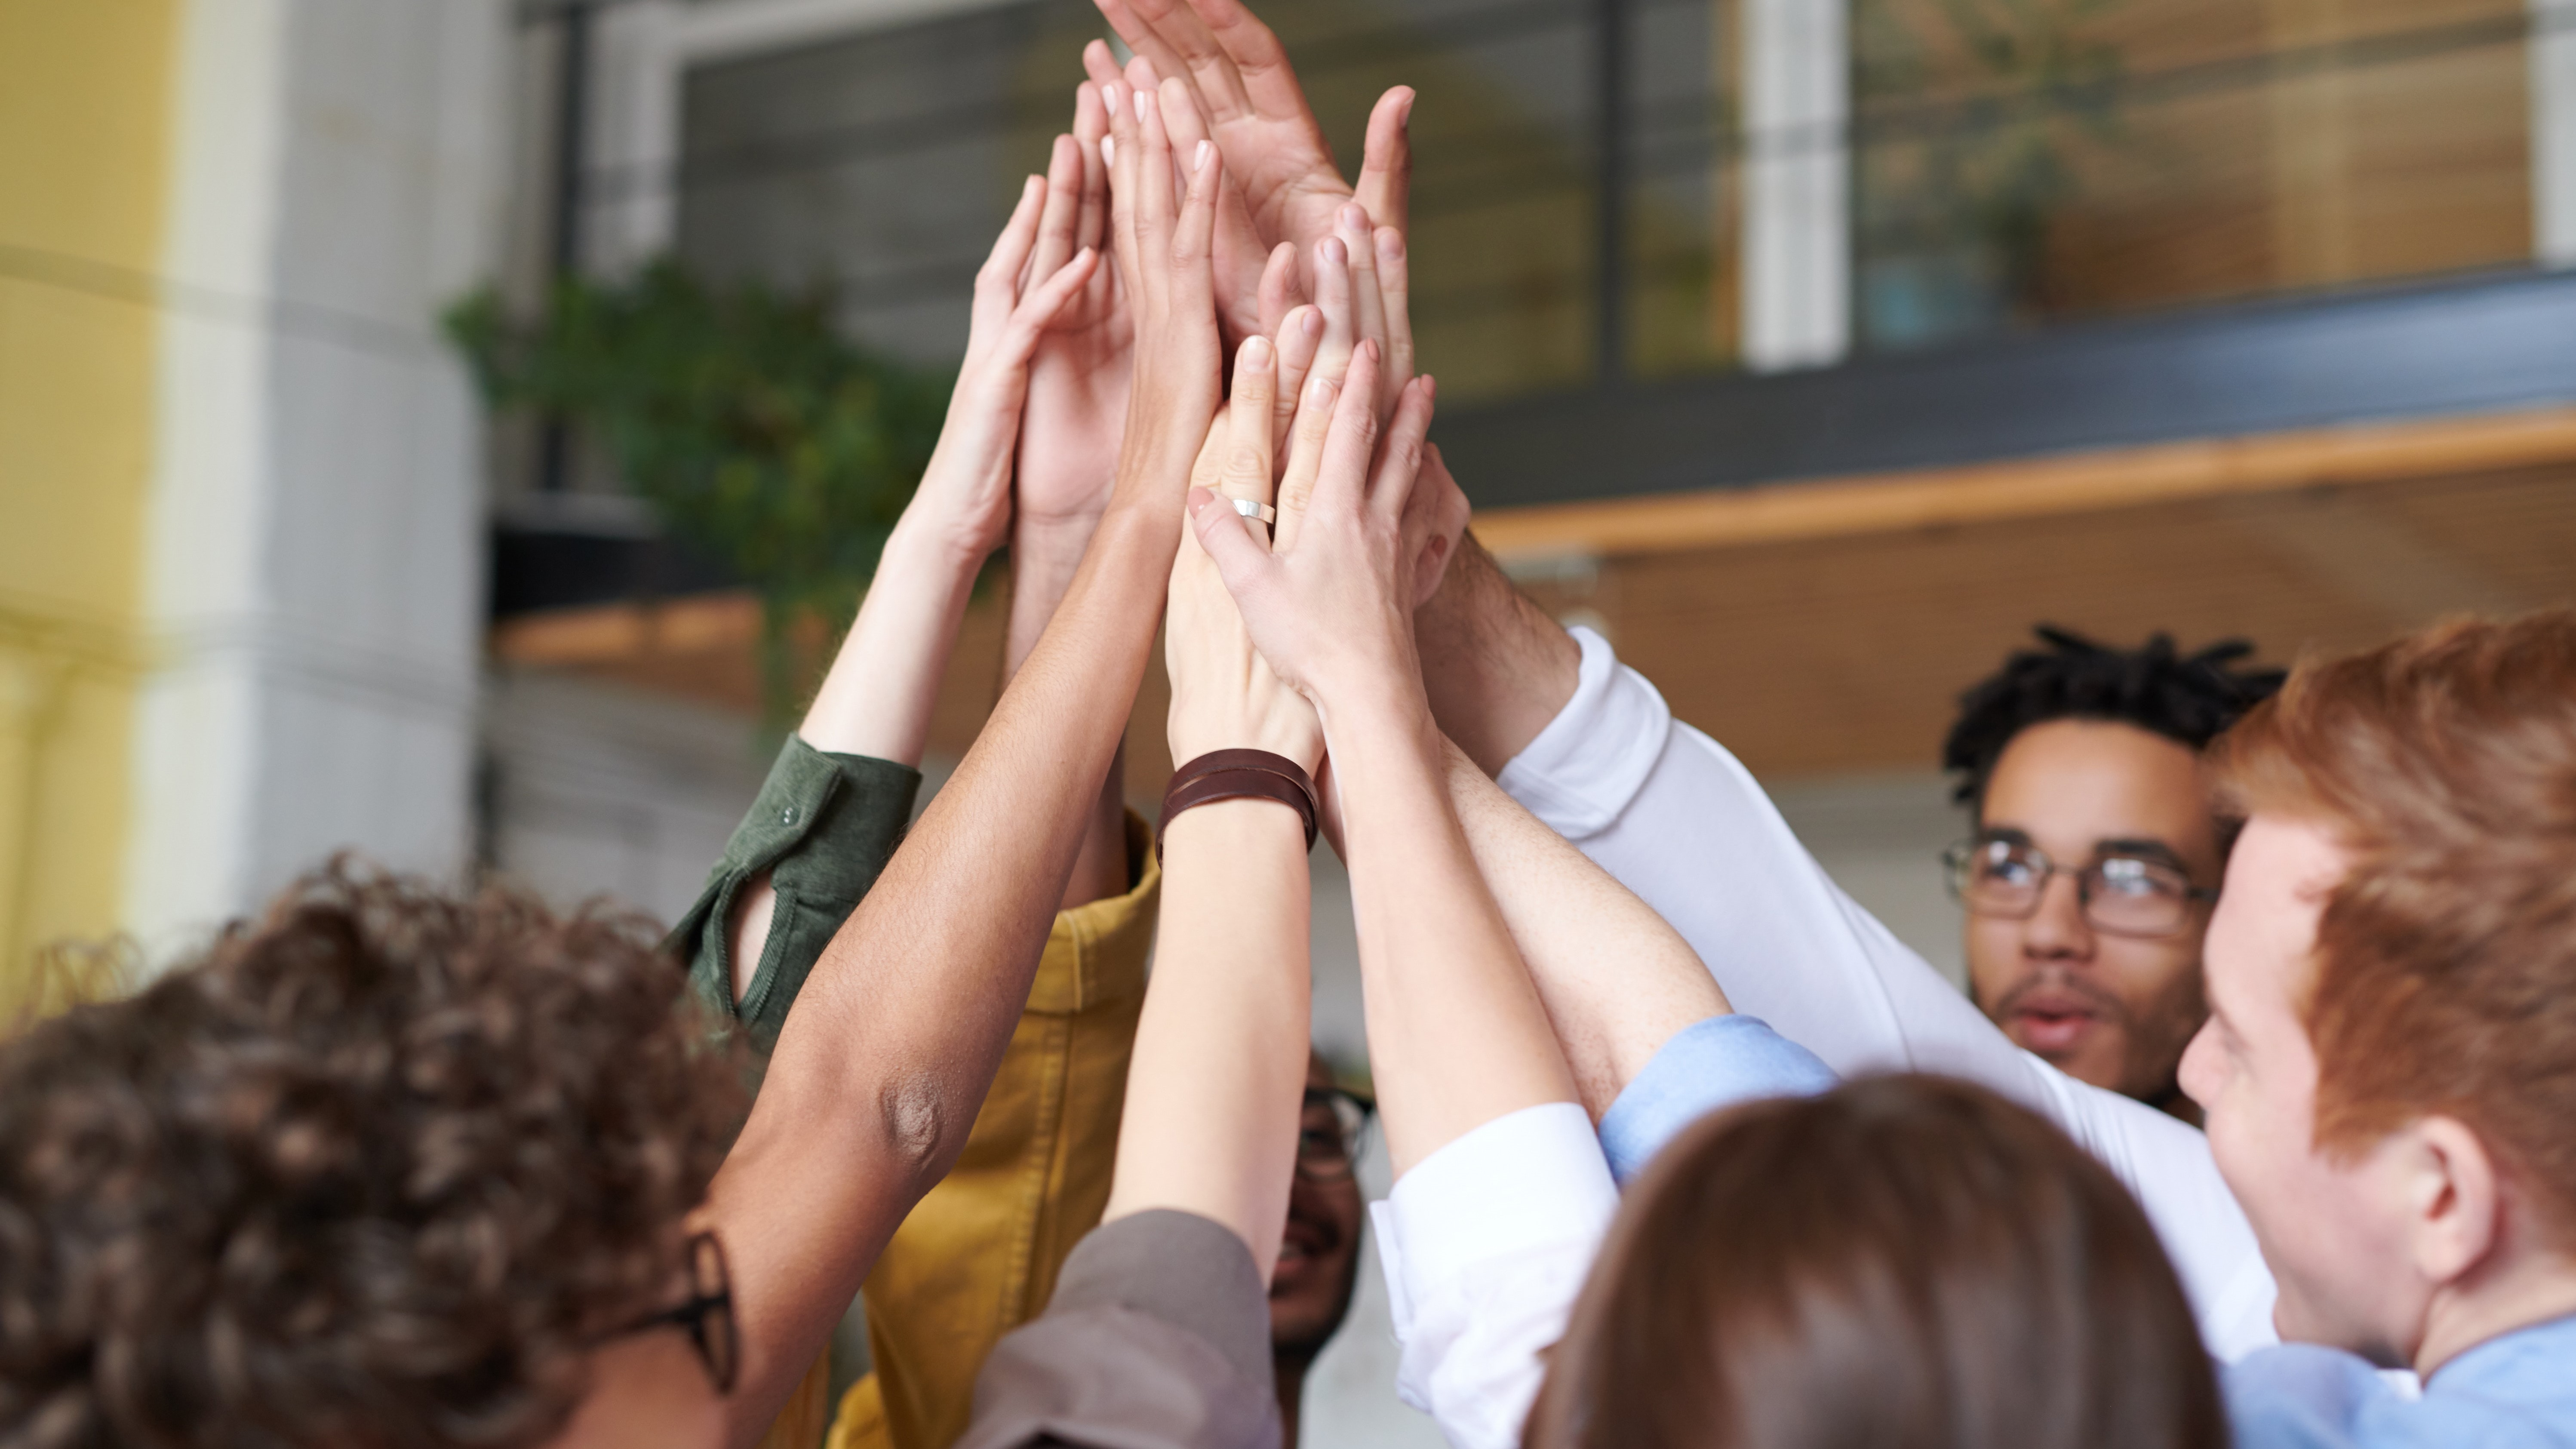 5 Practical Steps for Communications that Engage Your Team